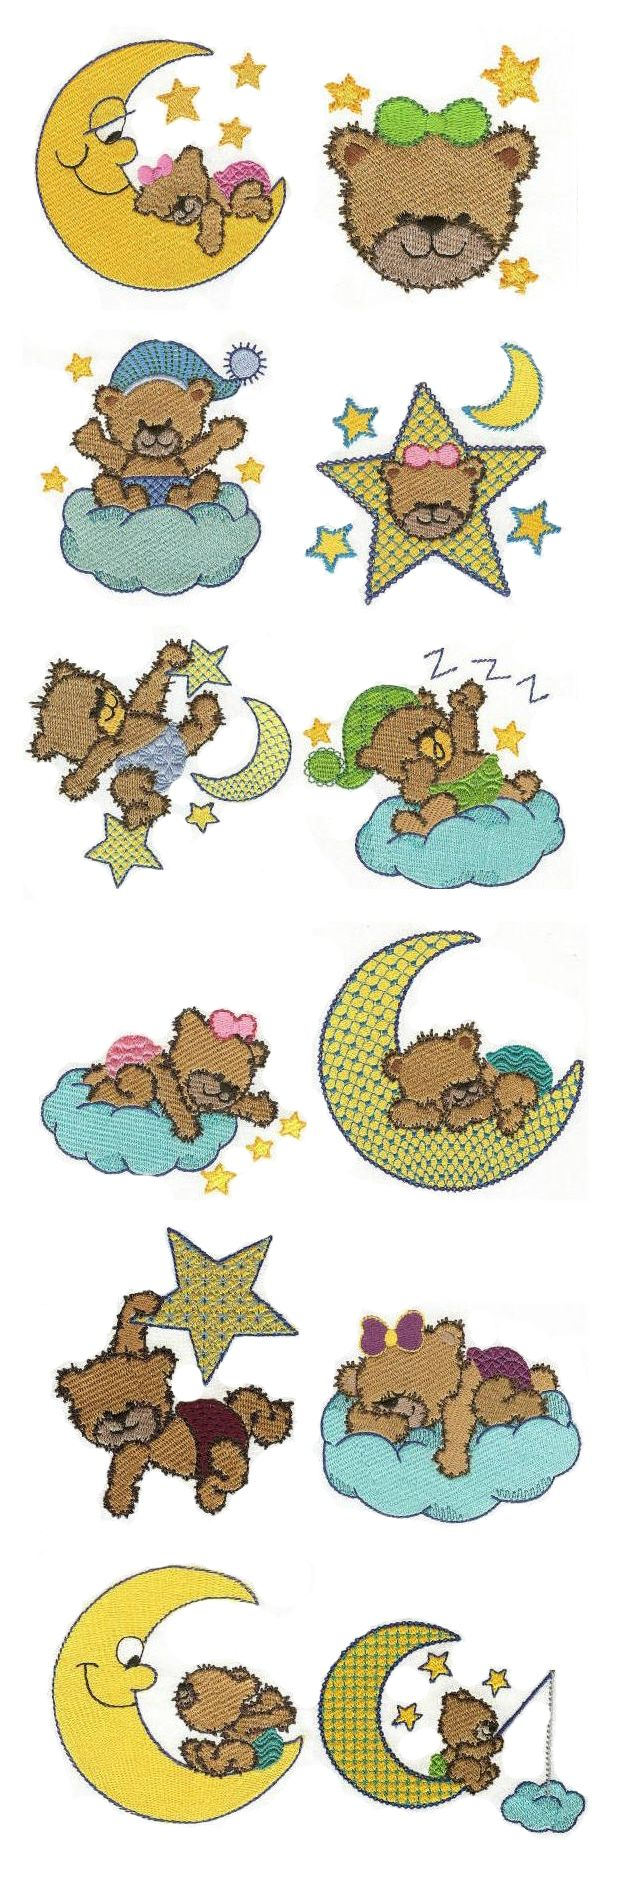 Bedtime Bears design set available for instant download at designsbyjuju.com